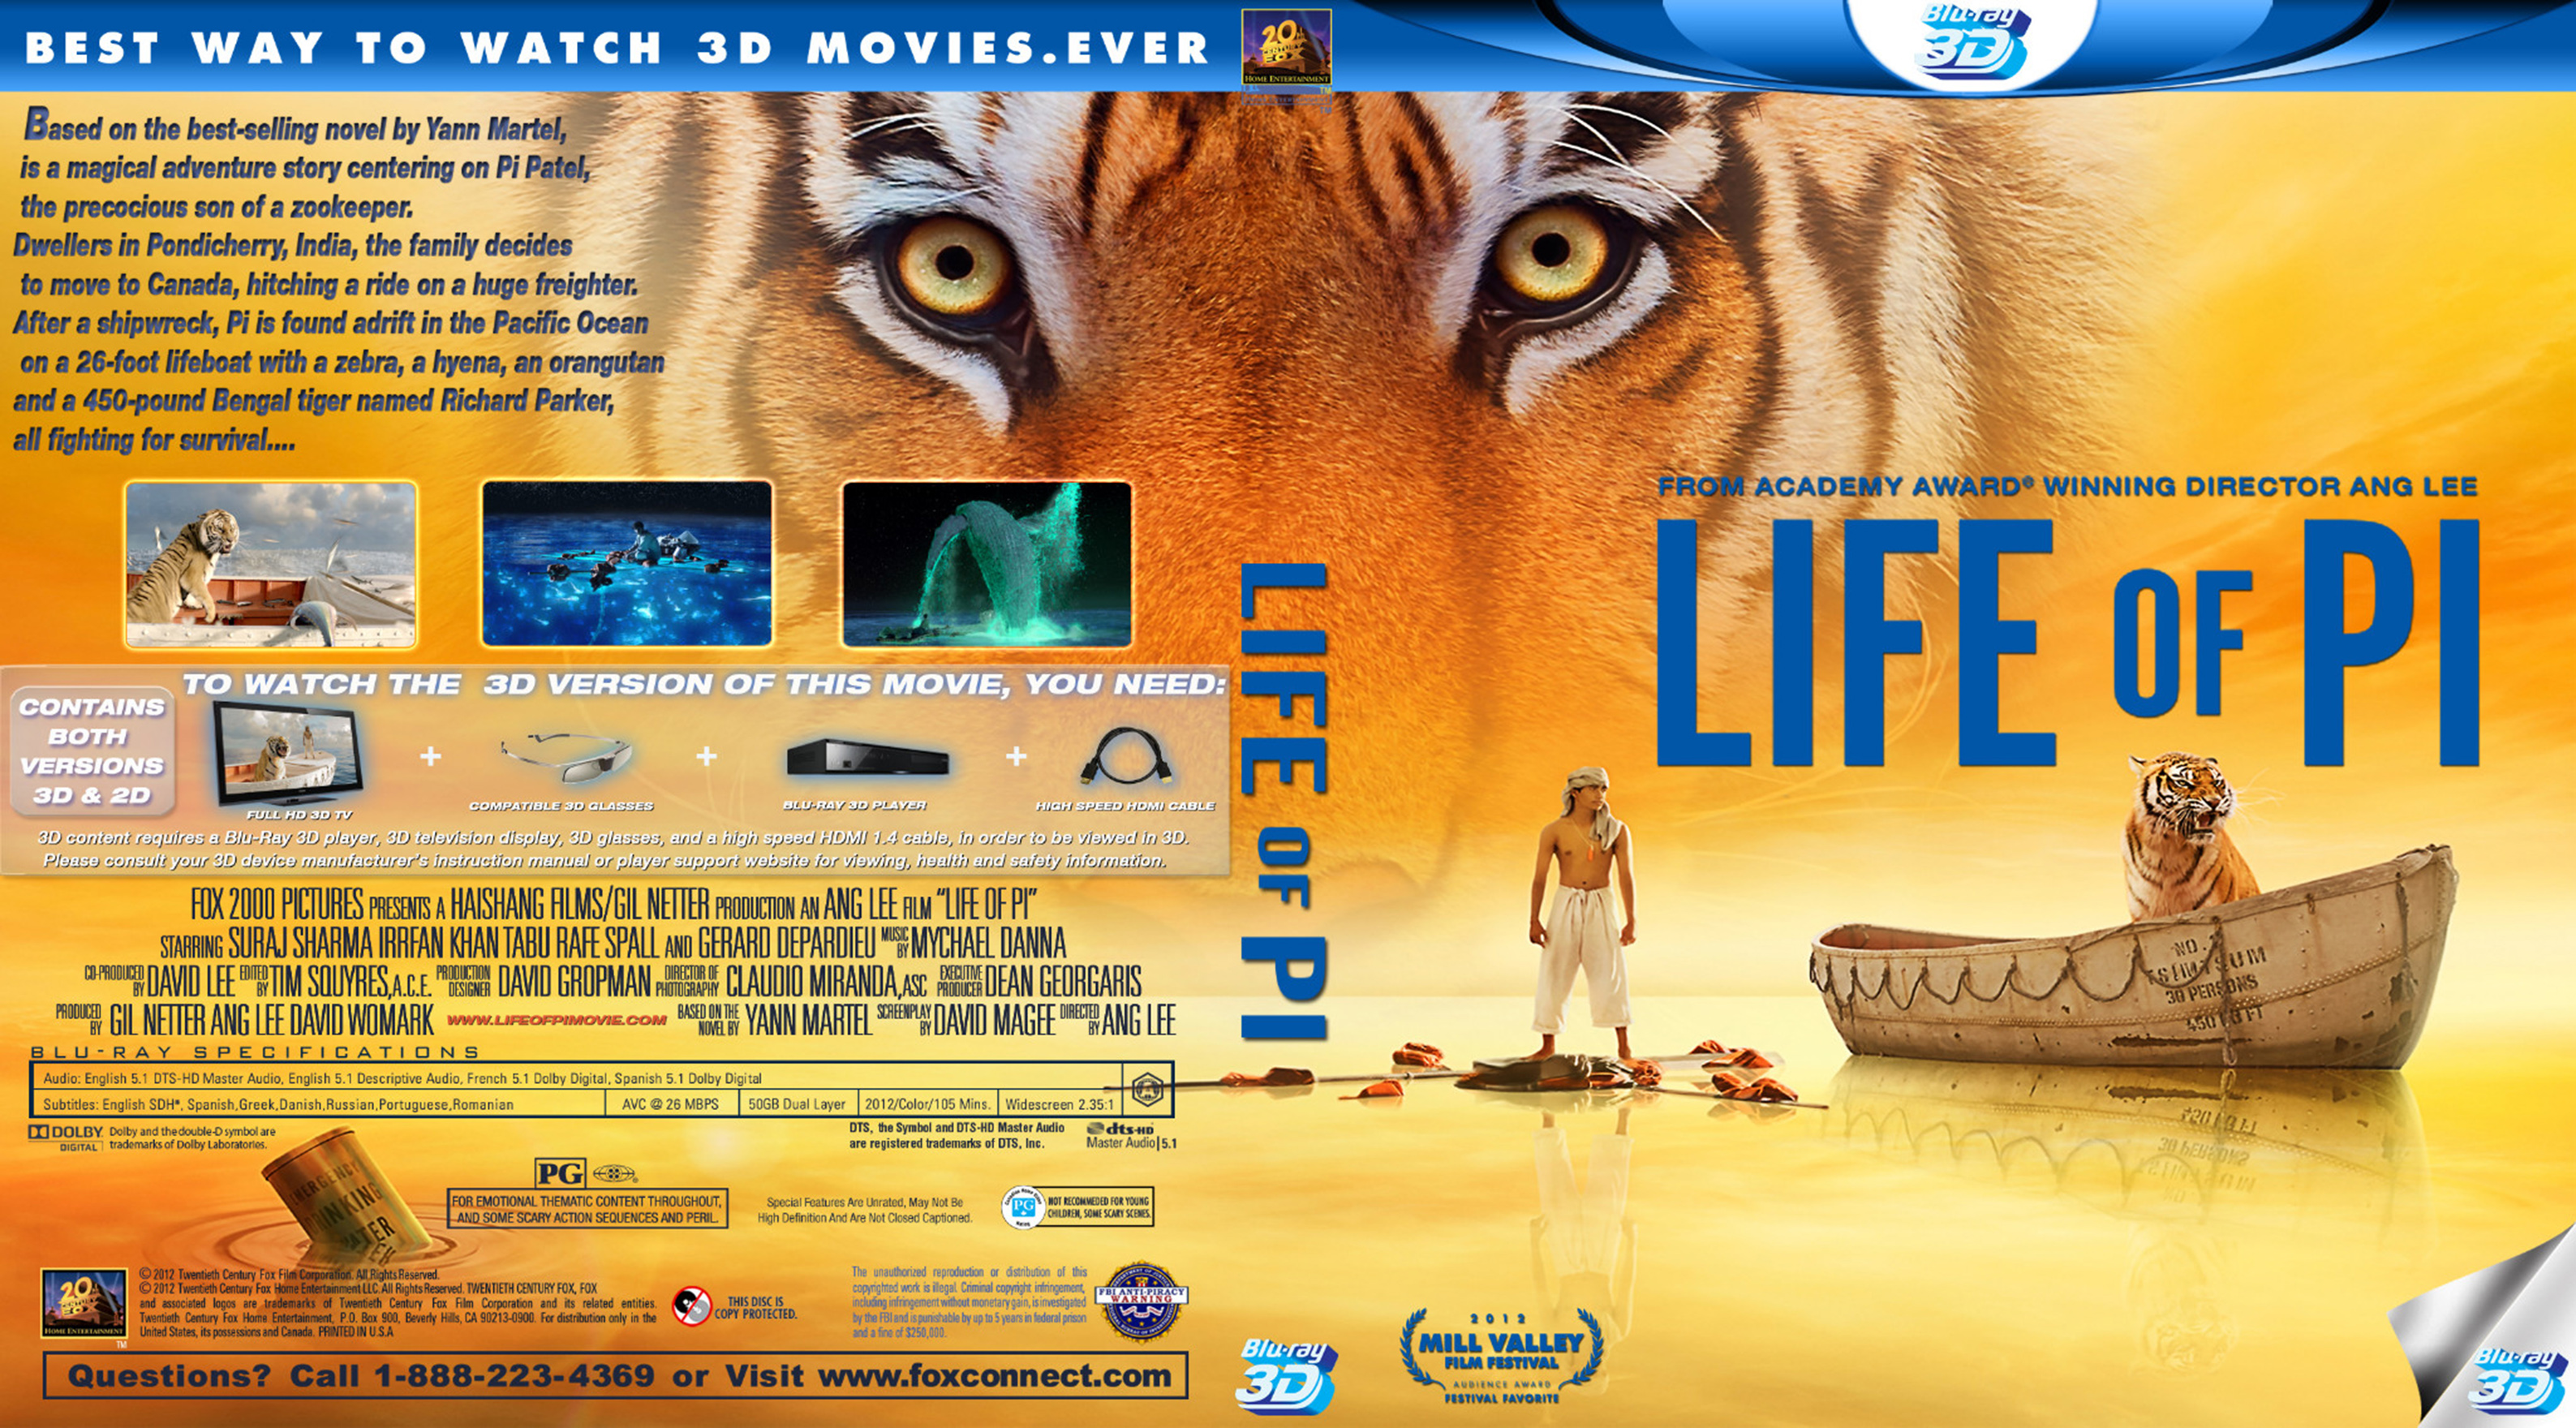 a review of the movie life of pi The life of pi - review an extravagantly decorated cake of a film with nothing inside but the wisdom of a fortune cookie by ryan gilbey print html the life of pi.